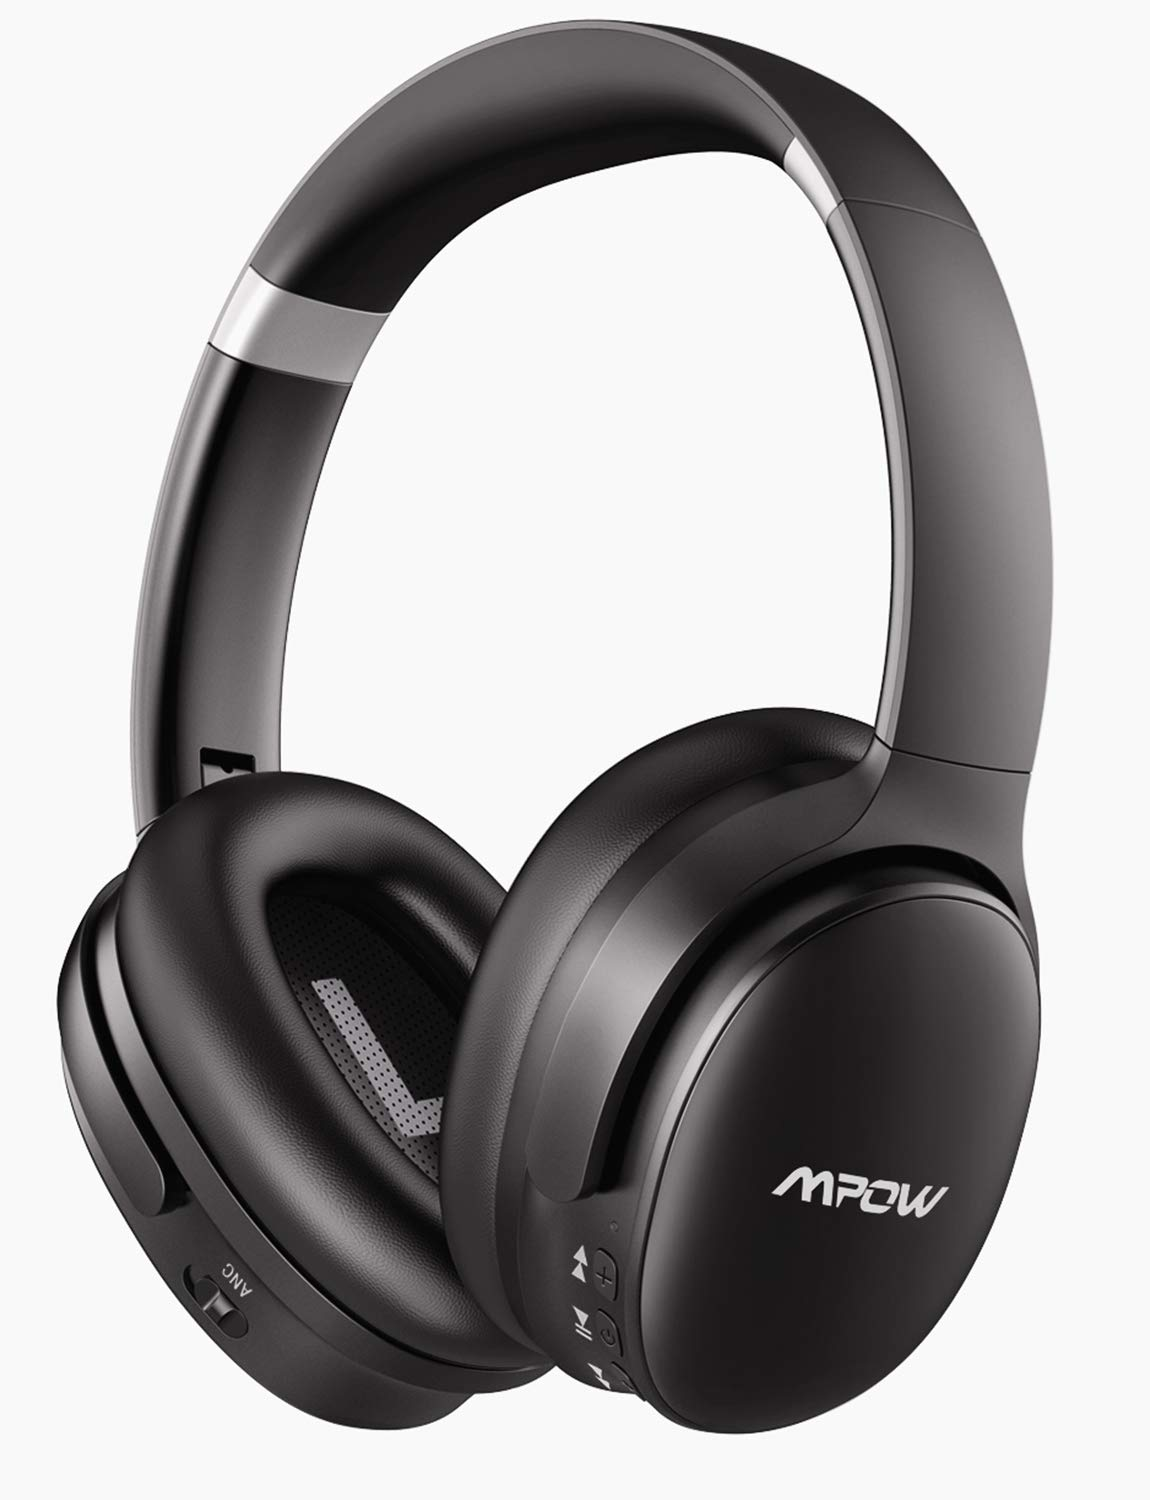 Mpow H10 Dual-Mic Noise Cancelling Bluetooth Headphones, [2019 Edition] ANC Over-Ear Wireless Headphones with CVC 6.0 Microphone, Hi-Fi Deep Bass, 30Hrs Playtime for TV/PC/Phone/Travel/Work by Mpow